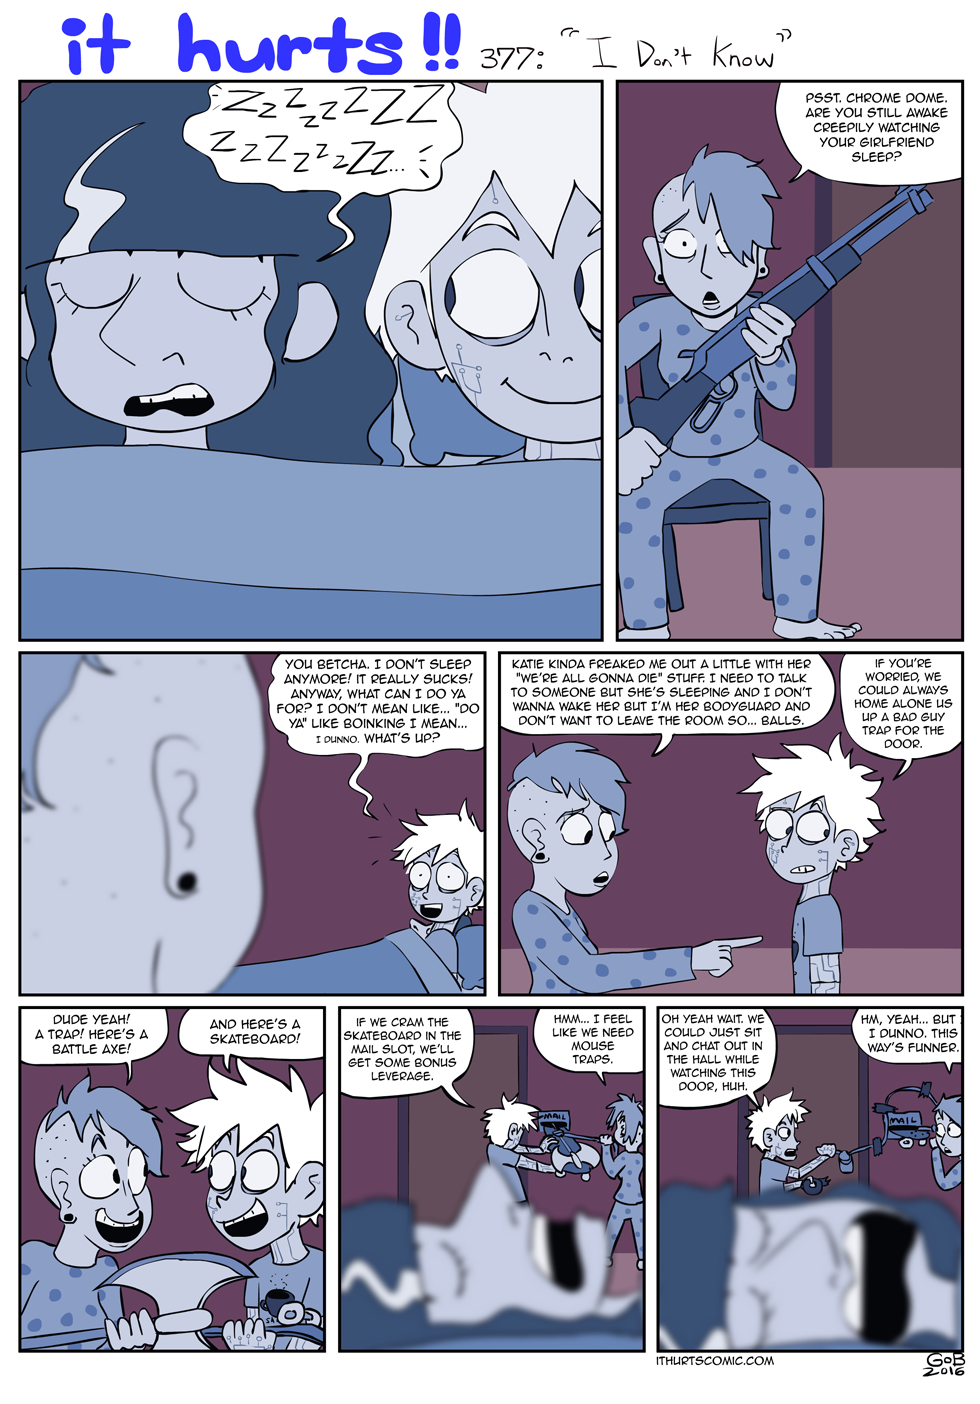 377: I Don't Know